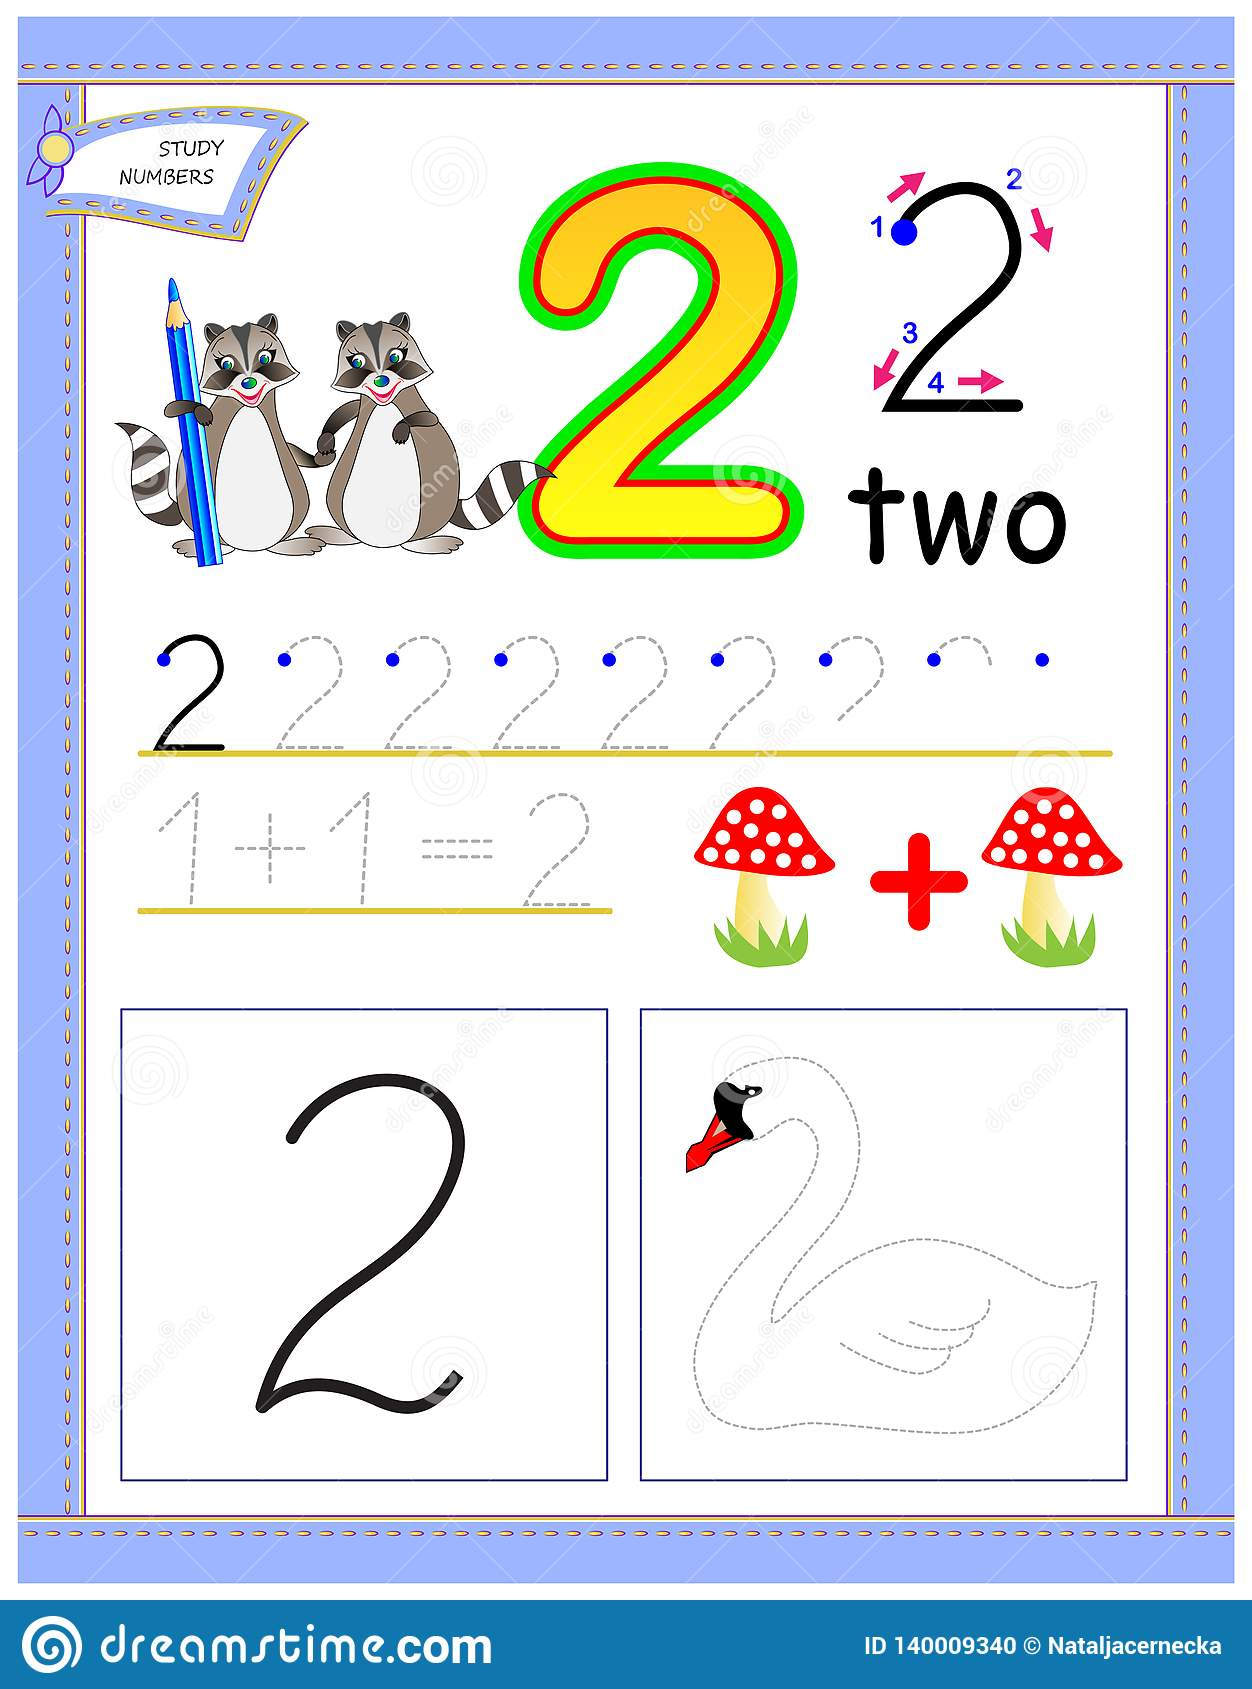 Educational Page For Kids With Number 2 Draw The Contour